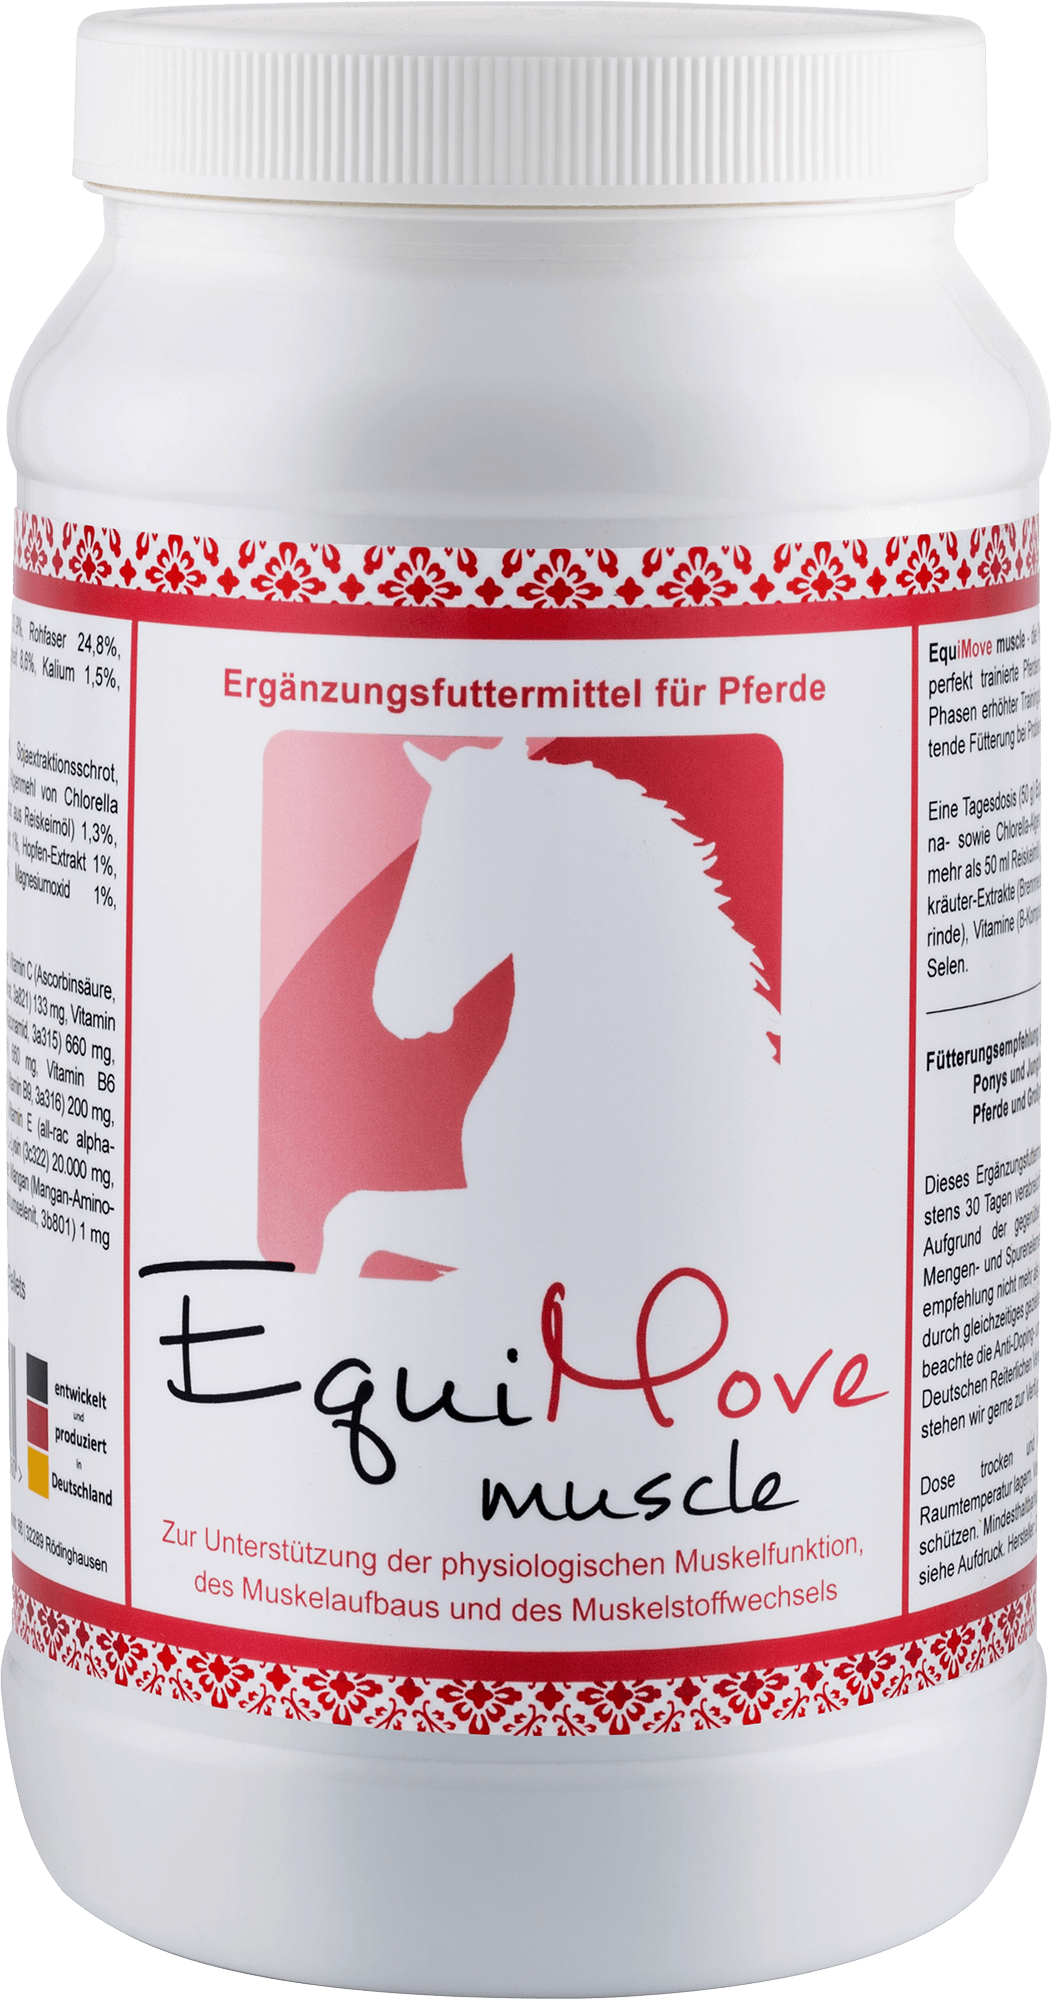 EquiMove muscle